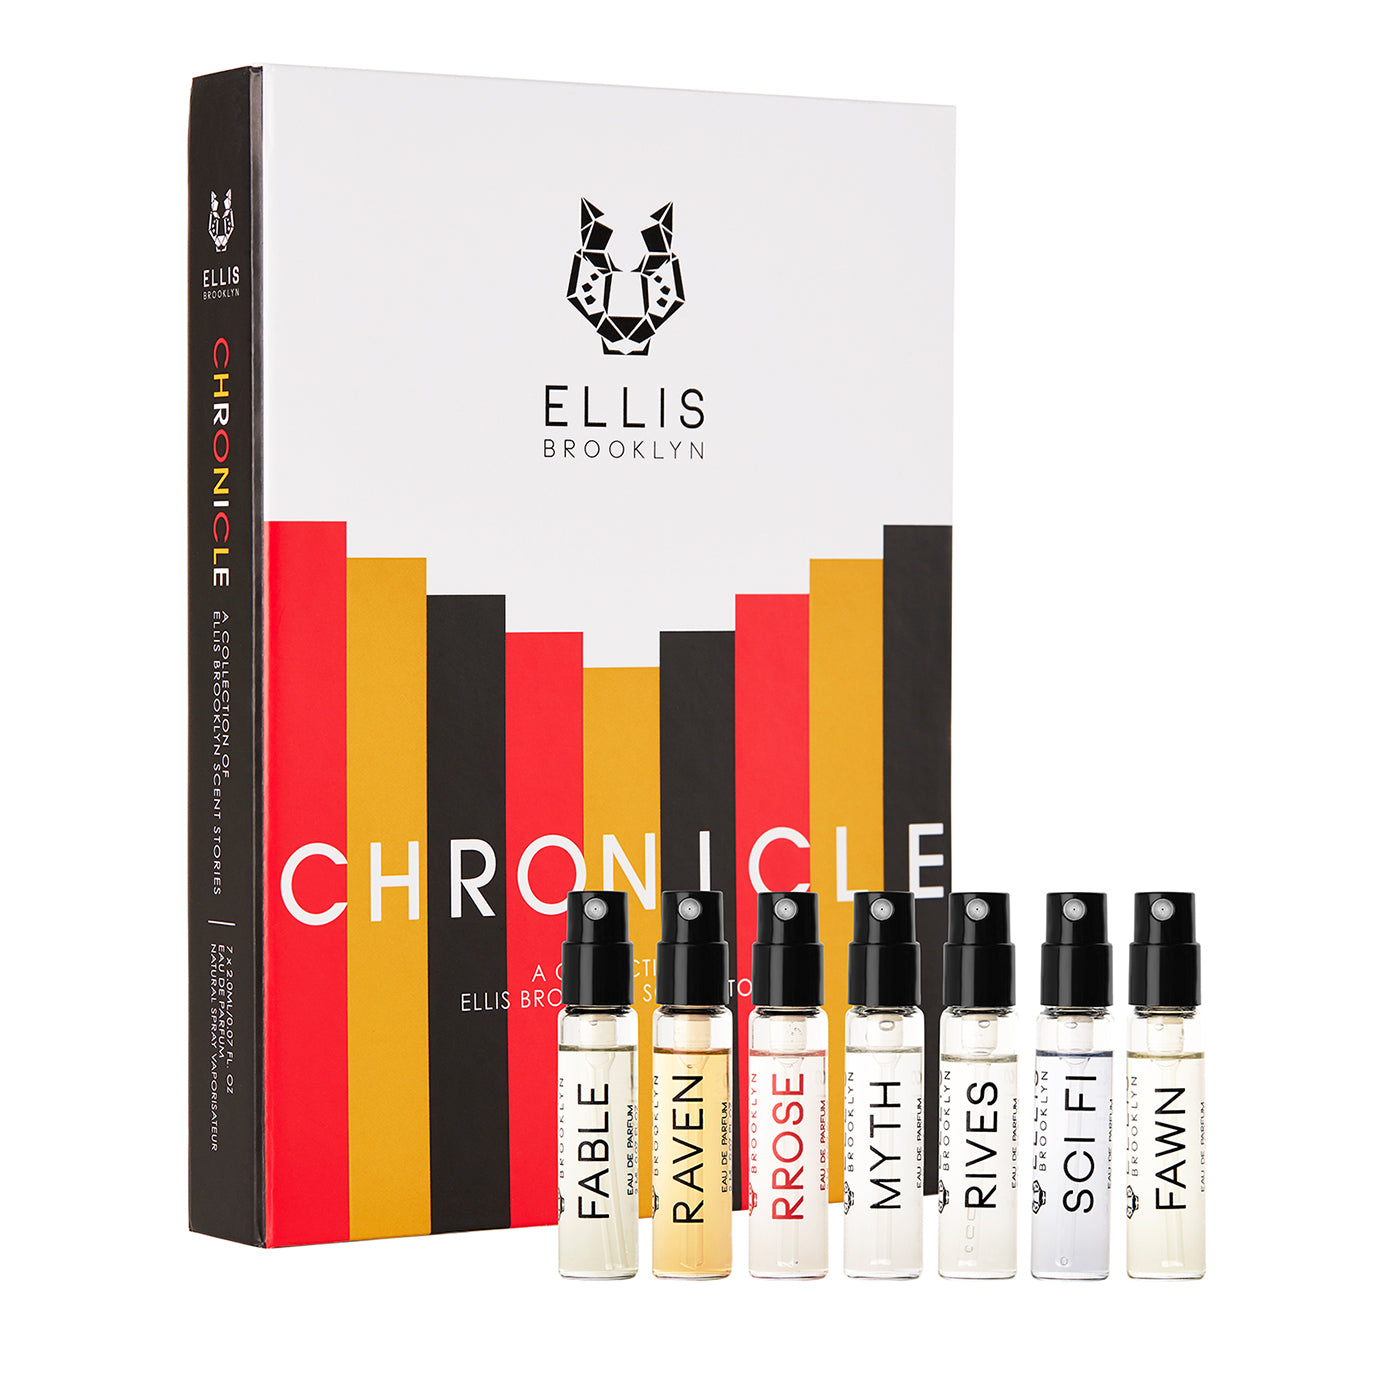 Ellis Brooklyn Chronicle Fragrance Discovery Set